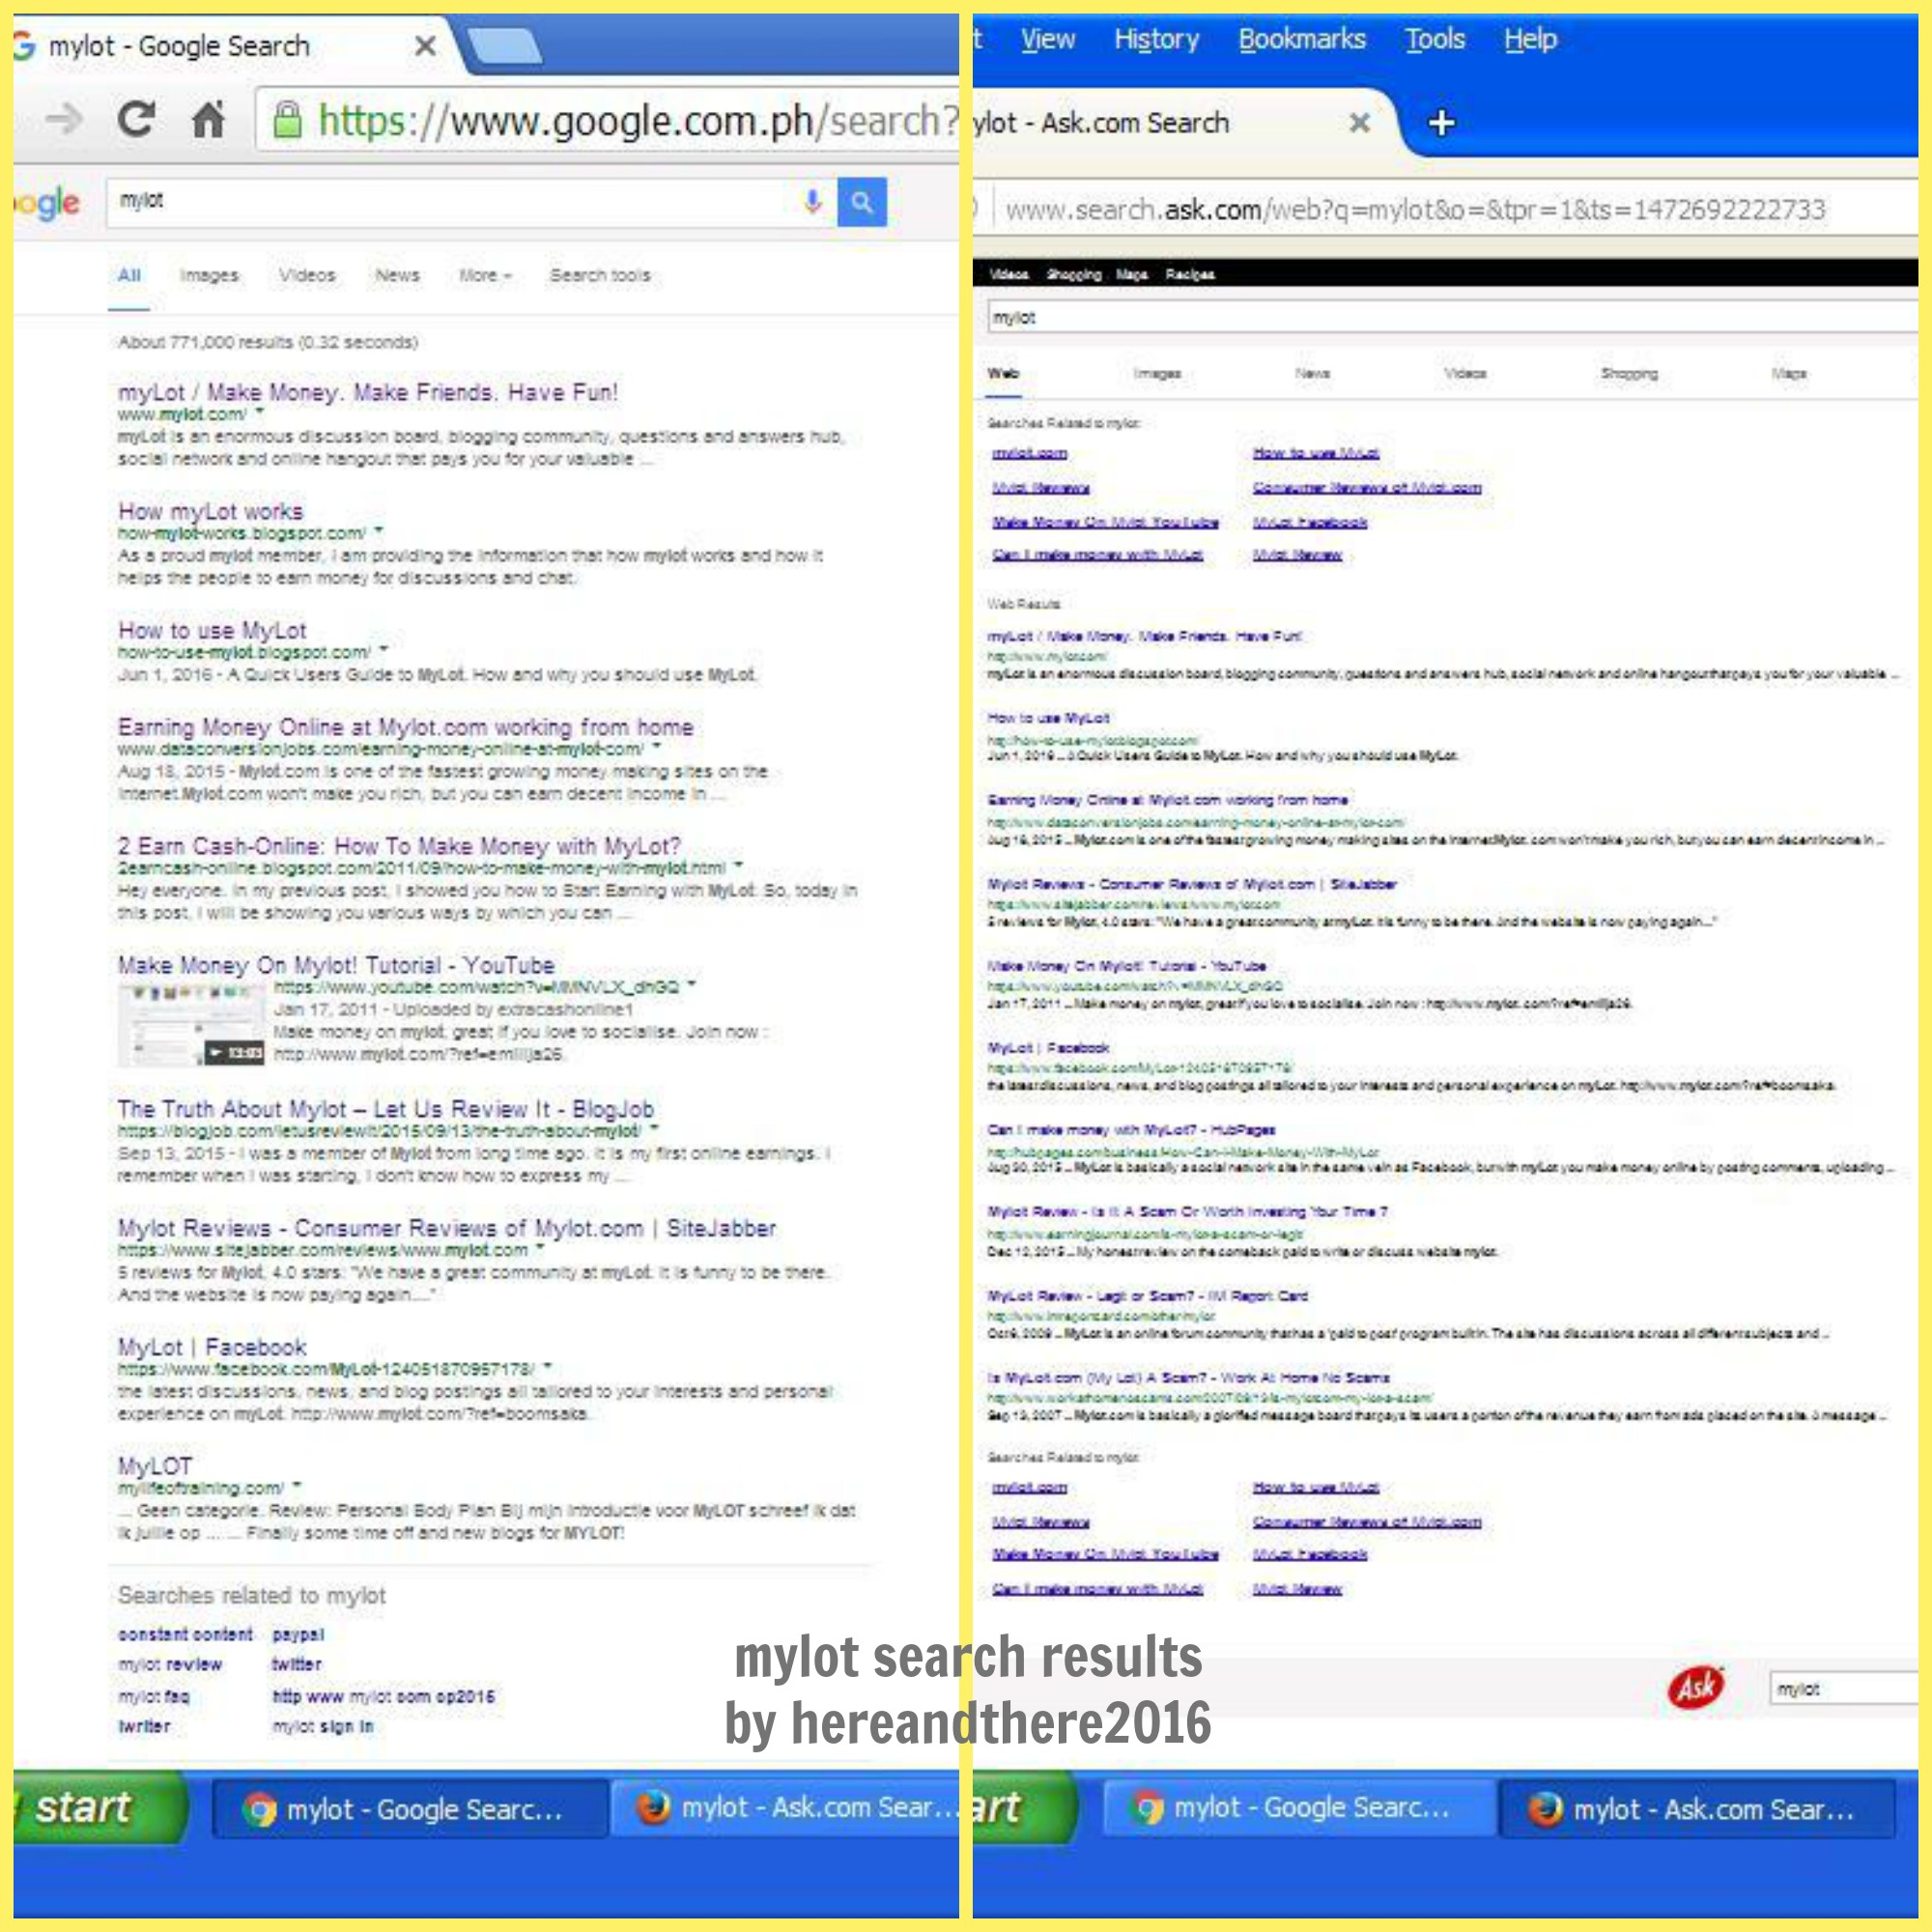 Mylot search results by hereandthere2016